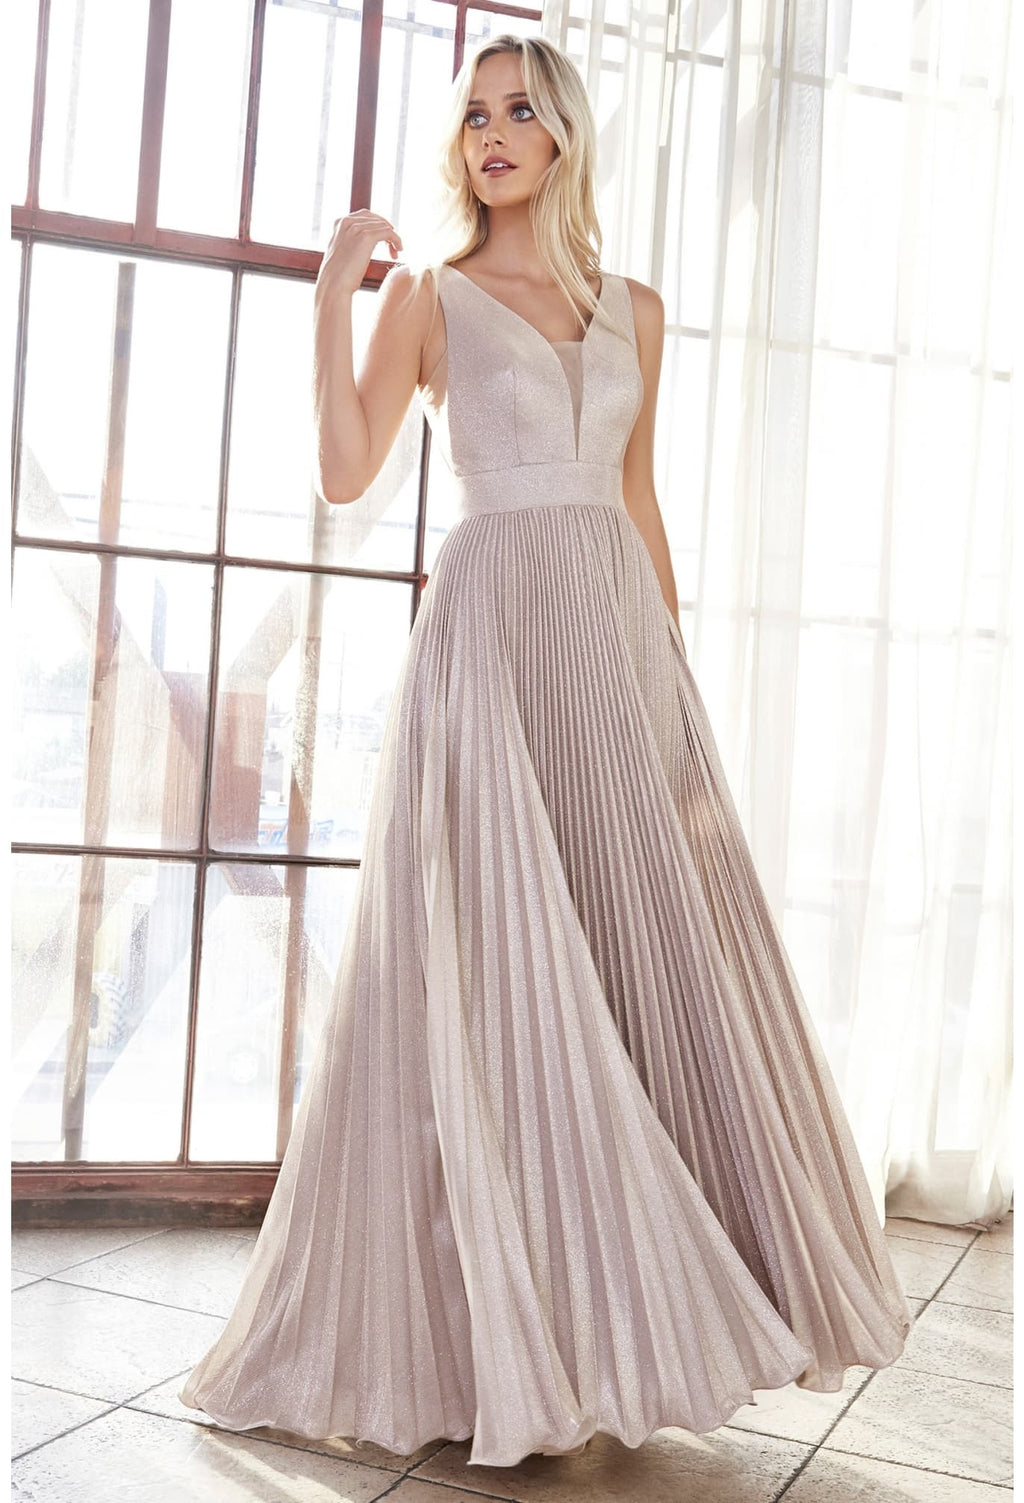 A-line pleated gown with glitter metallic finish and deep plunge v-neckline